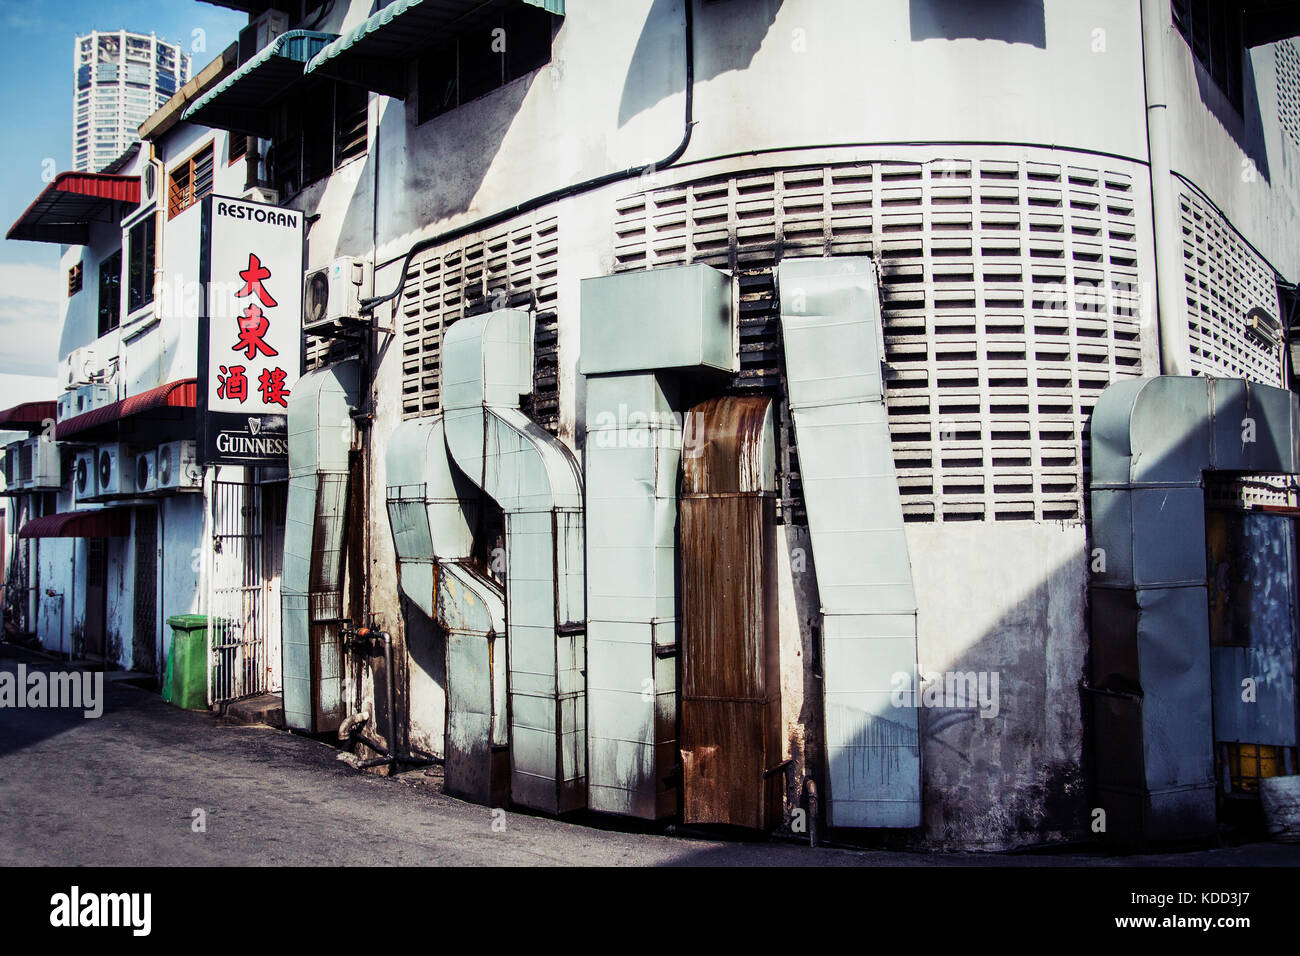 Extractor Units Stock Photos amp Extractor Units Stock  : gritty back streets at a chinese restaurant in chinatown on penang KDD3J7 from www.alamy.com size 1300 x 956 jpeg 241kB